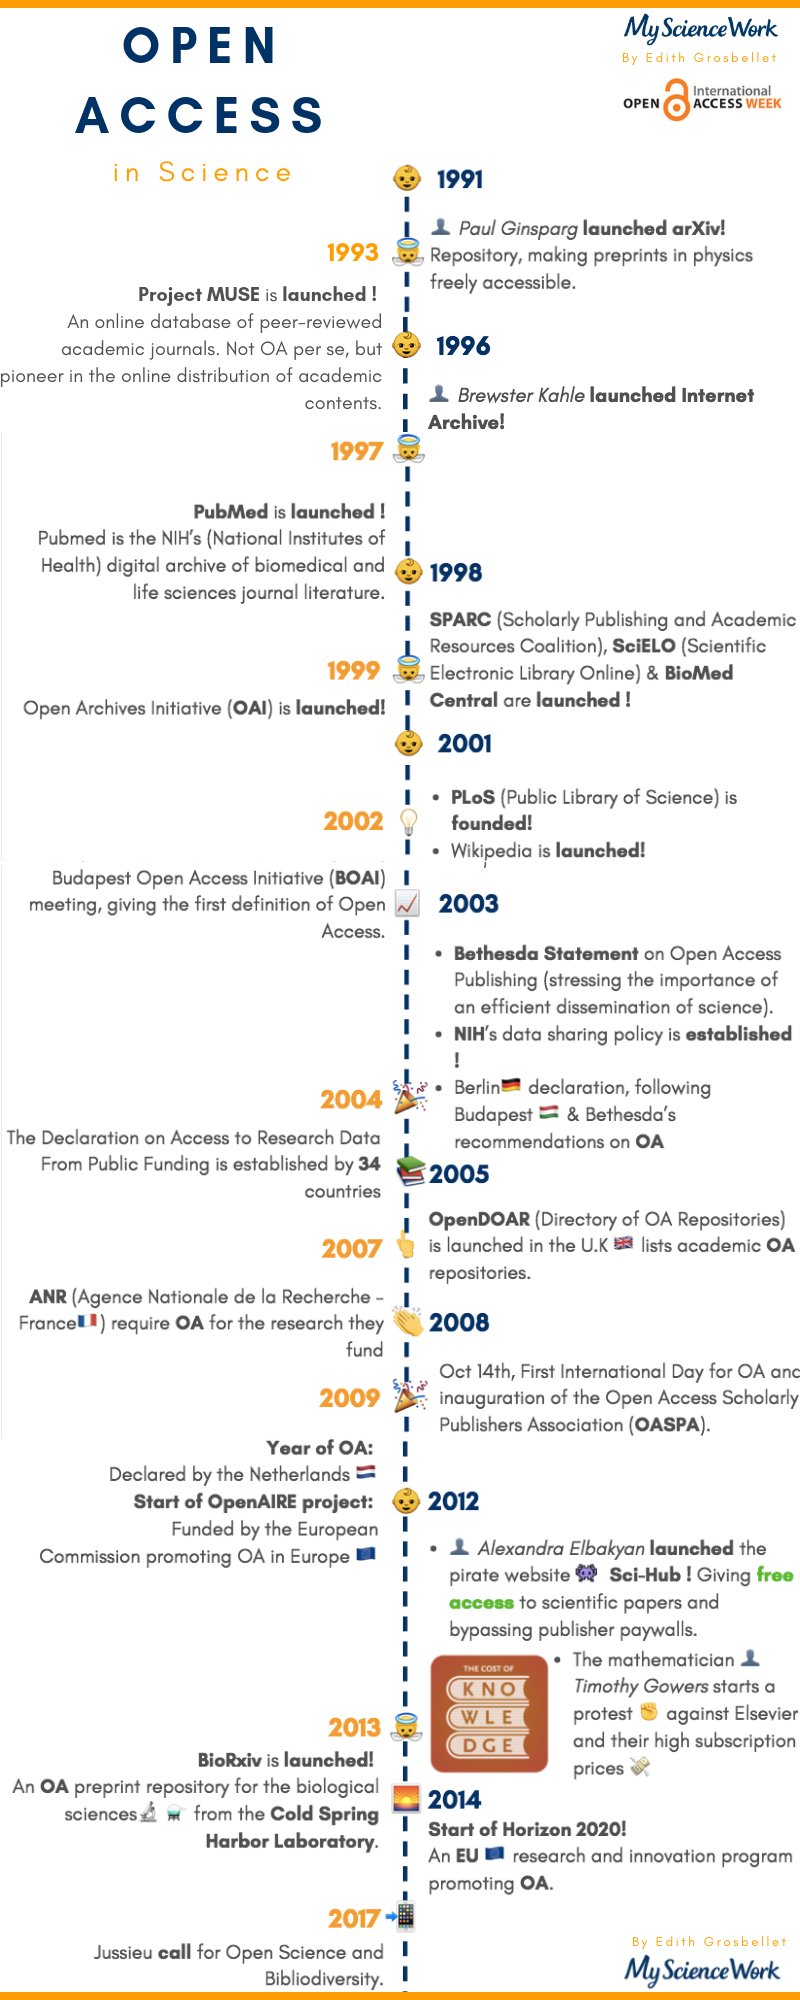 OpenAccess Timeline